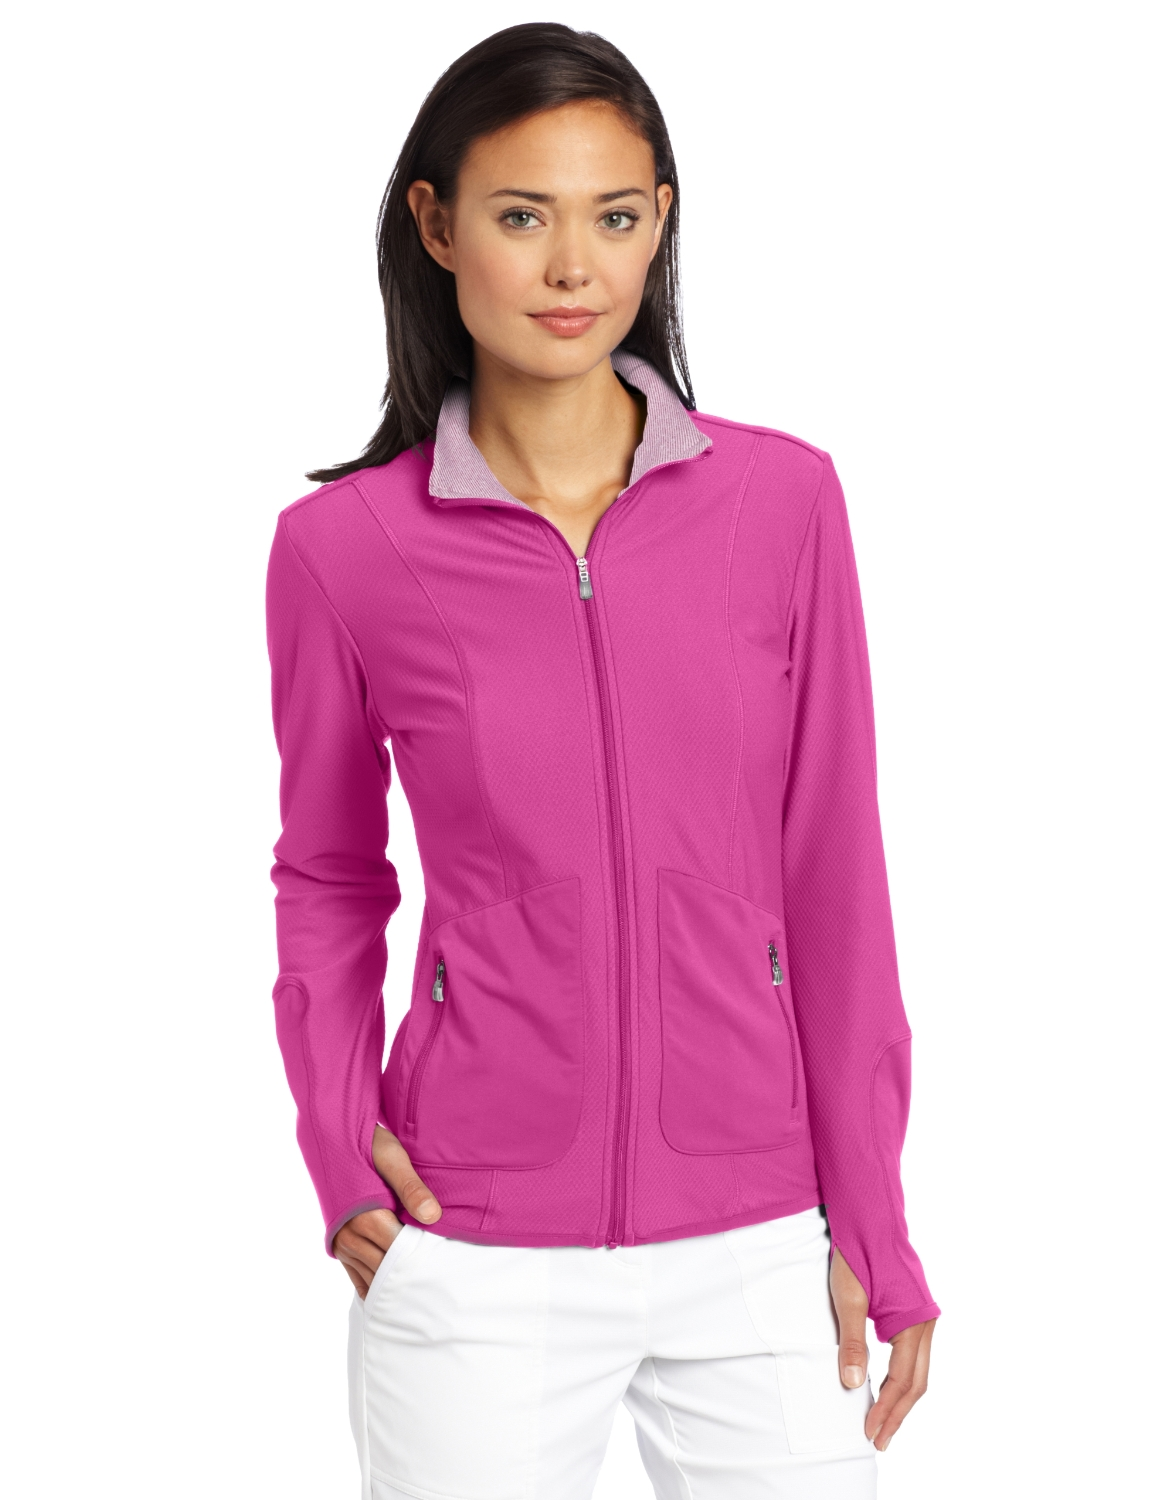 Adidas Womens Climalite Textured Knit Golf Jackets